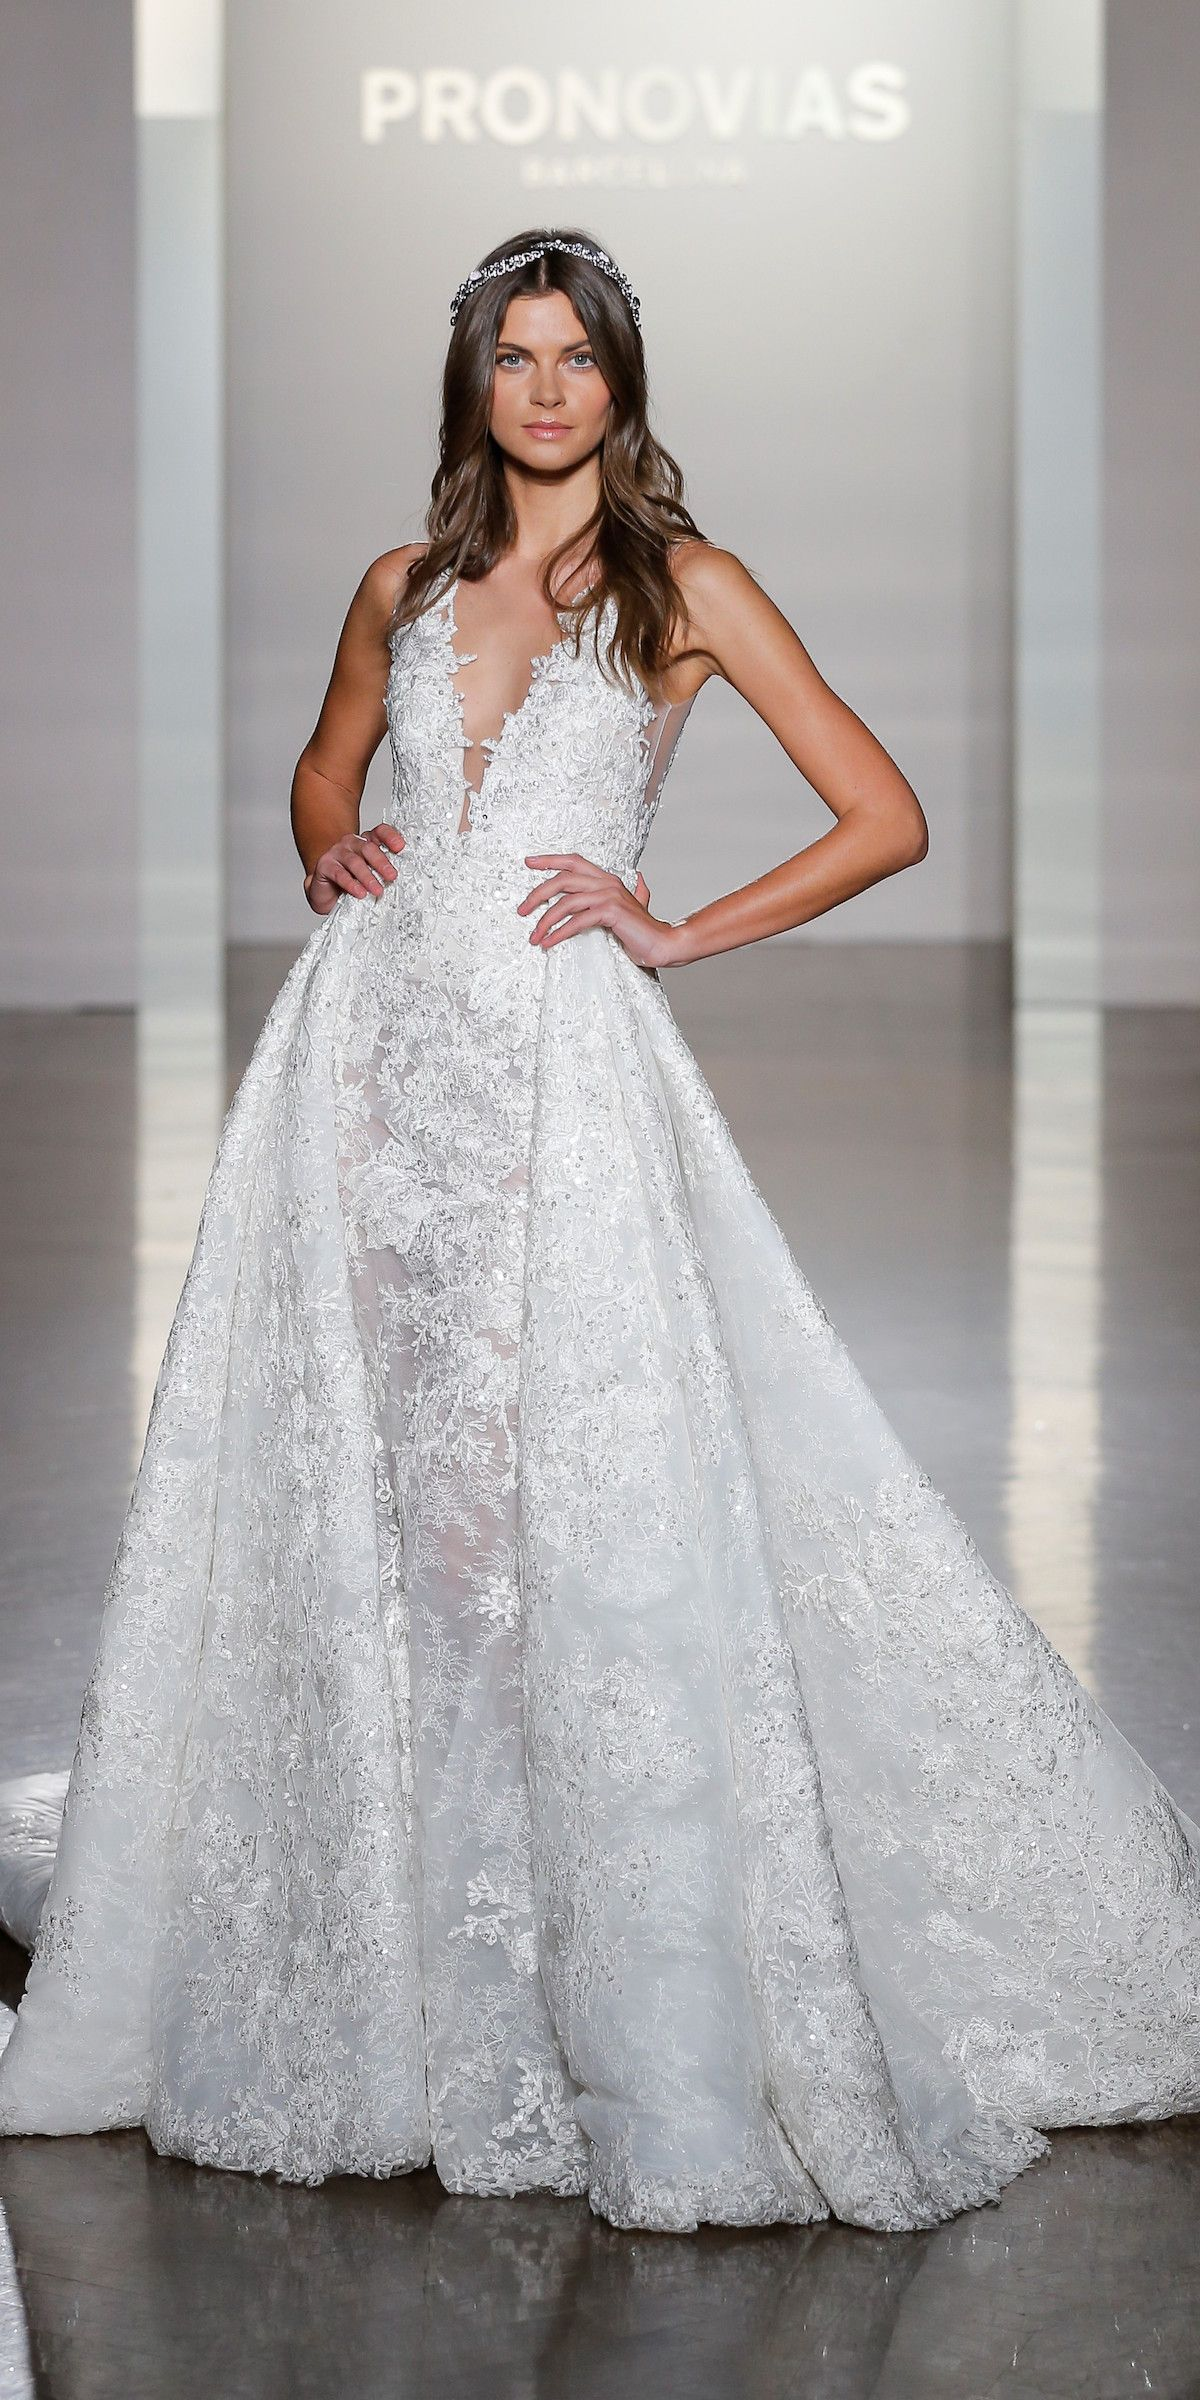 Atelier Pronovias 2017 alla New York Bridal Fashion Week